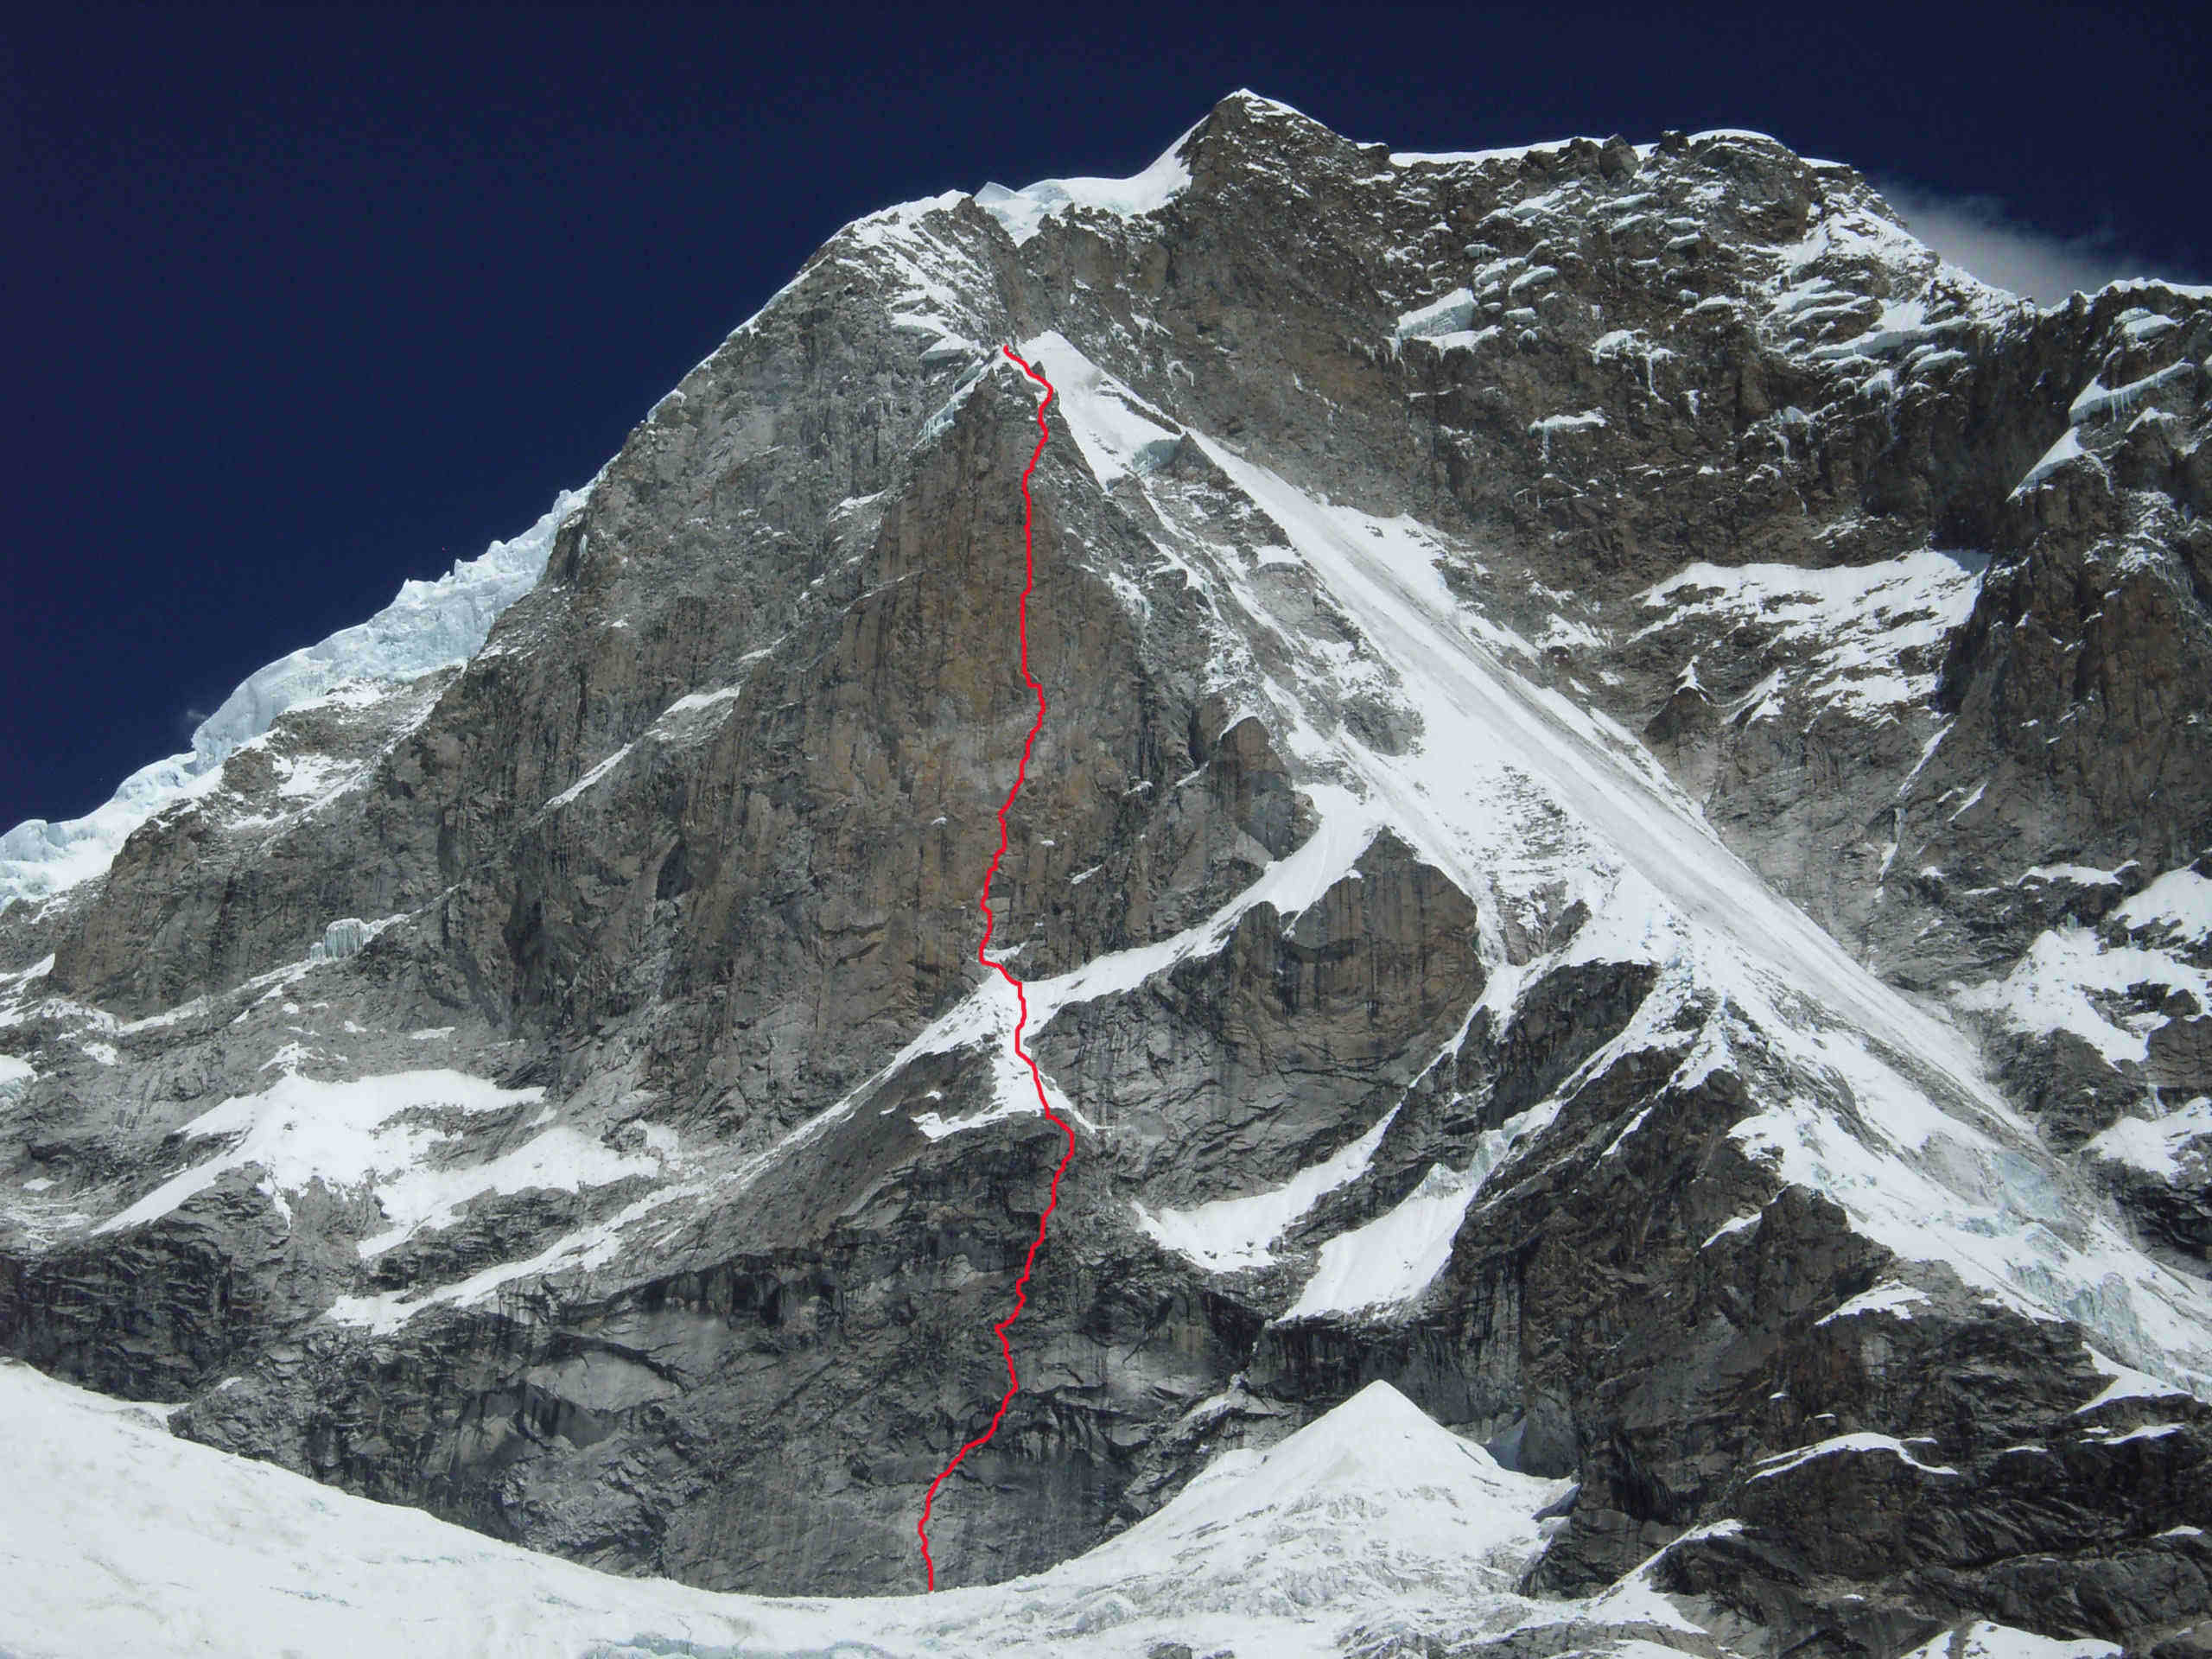 Huascaran North, East Face, Cordillera Blanca, Peru. The line marks the route Entre boires